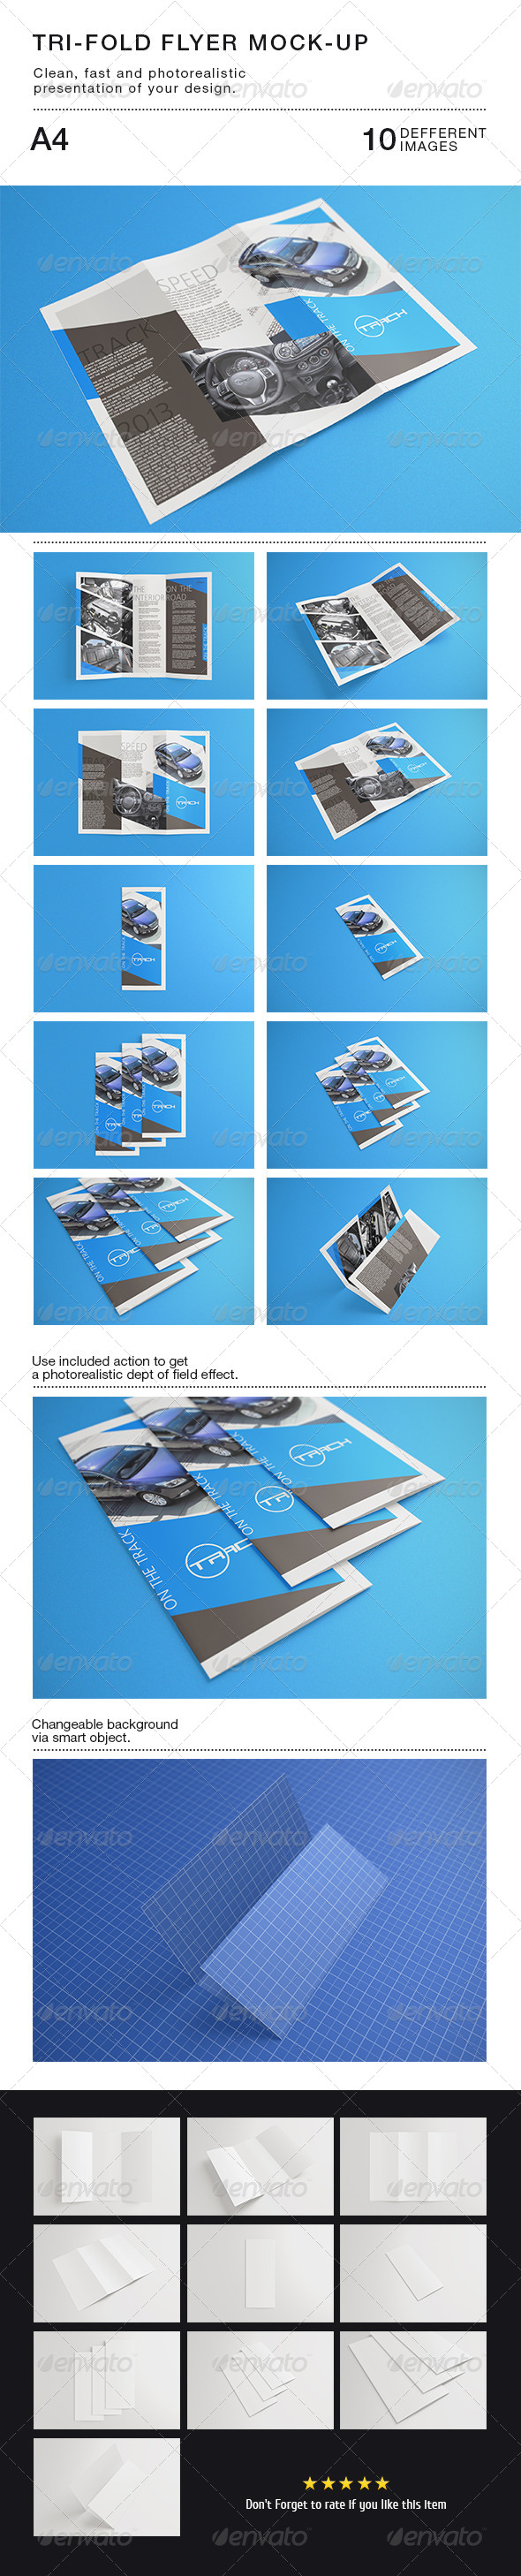 GraphicRiver Tri-fold Flyer A4 Mock-Up 6010358